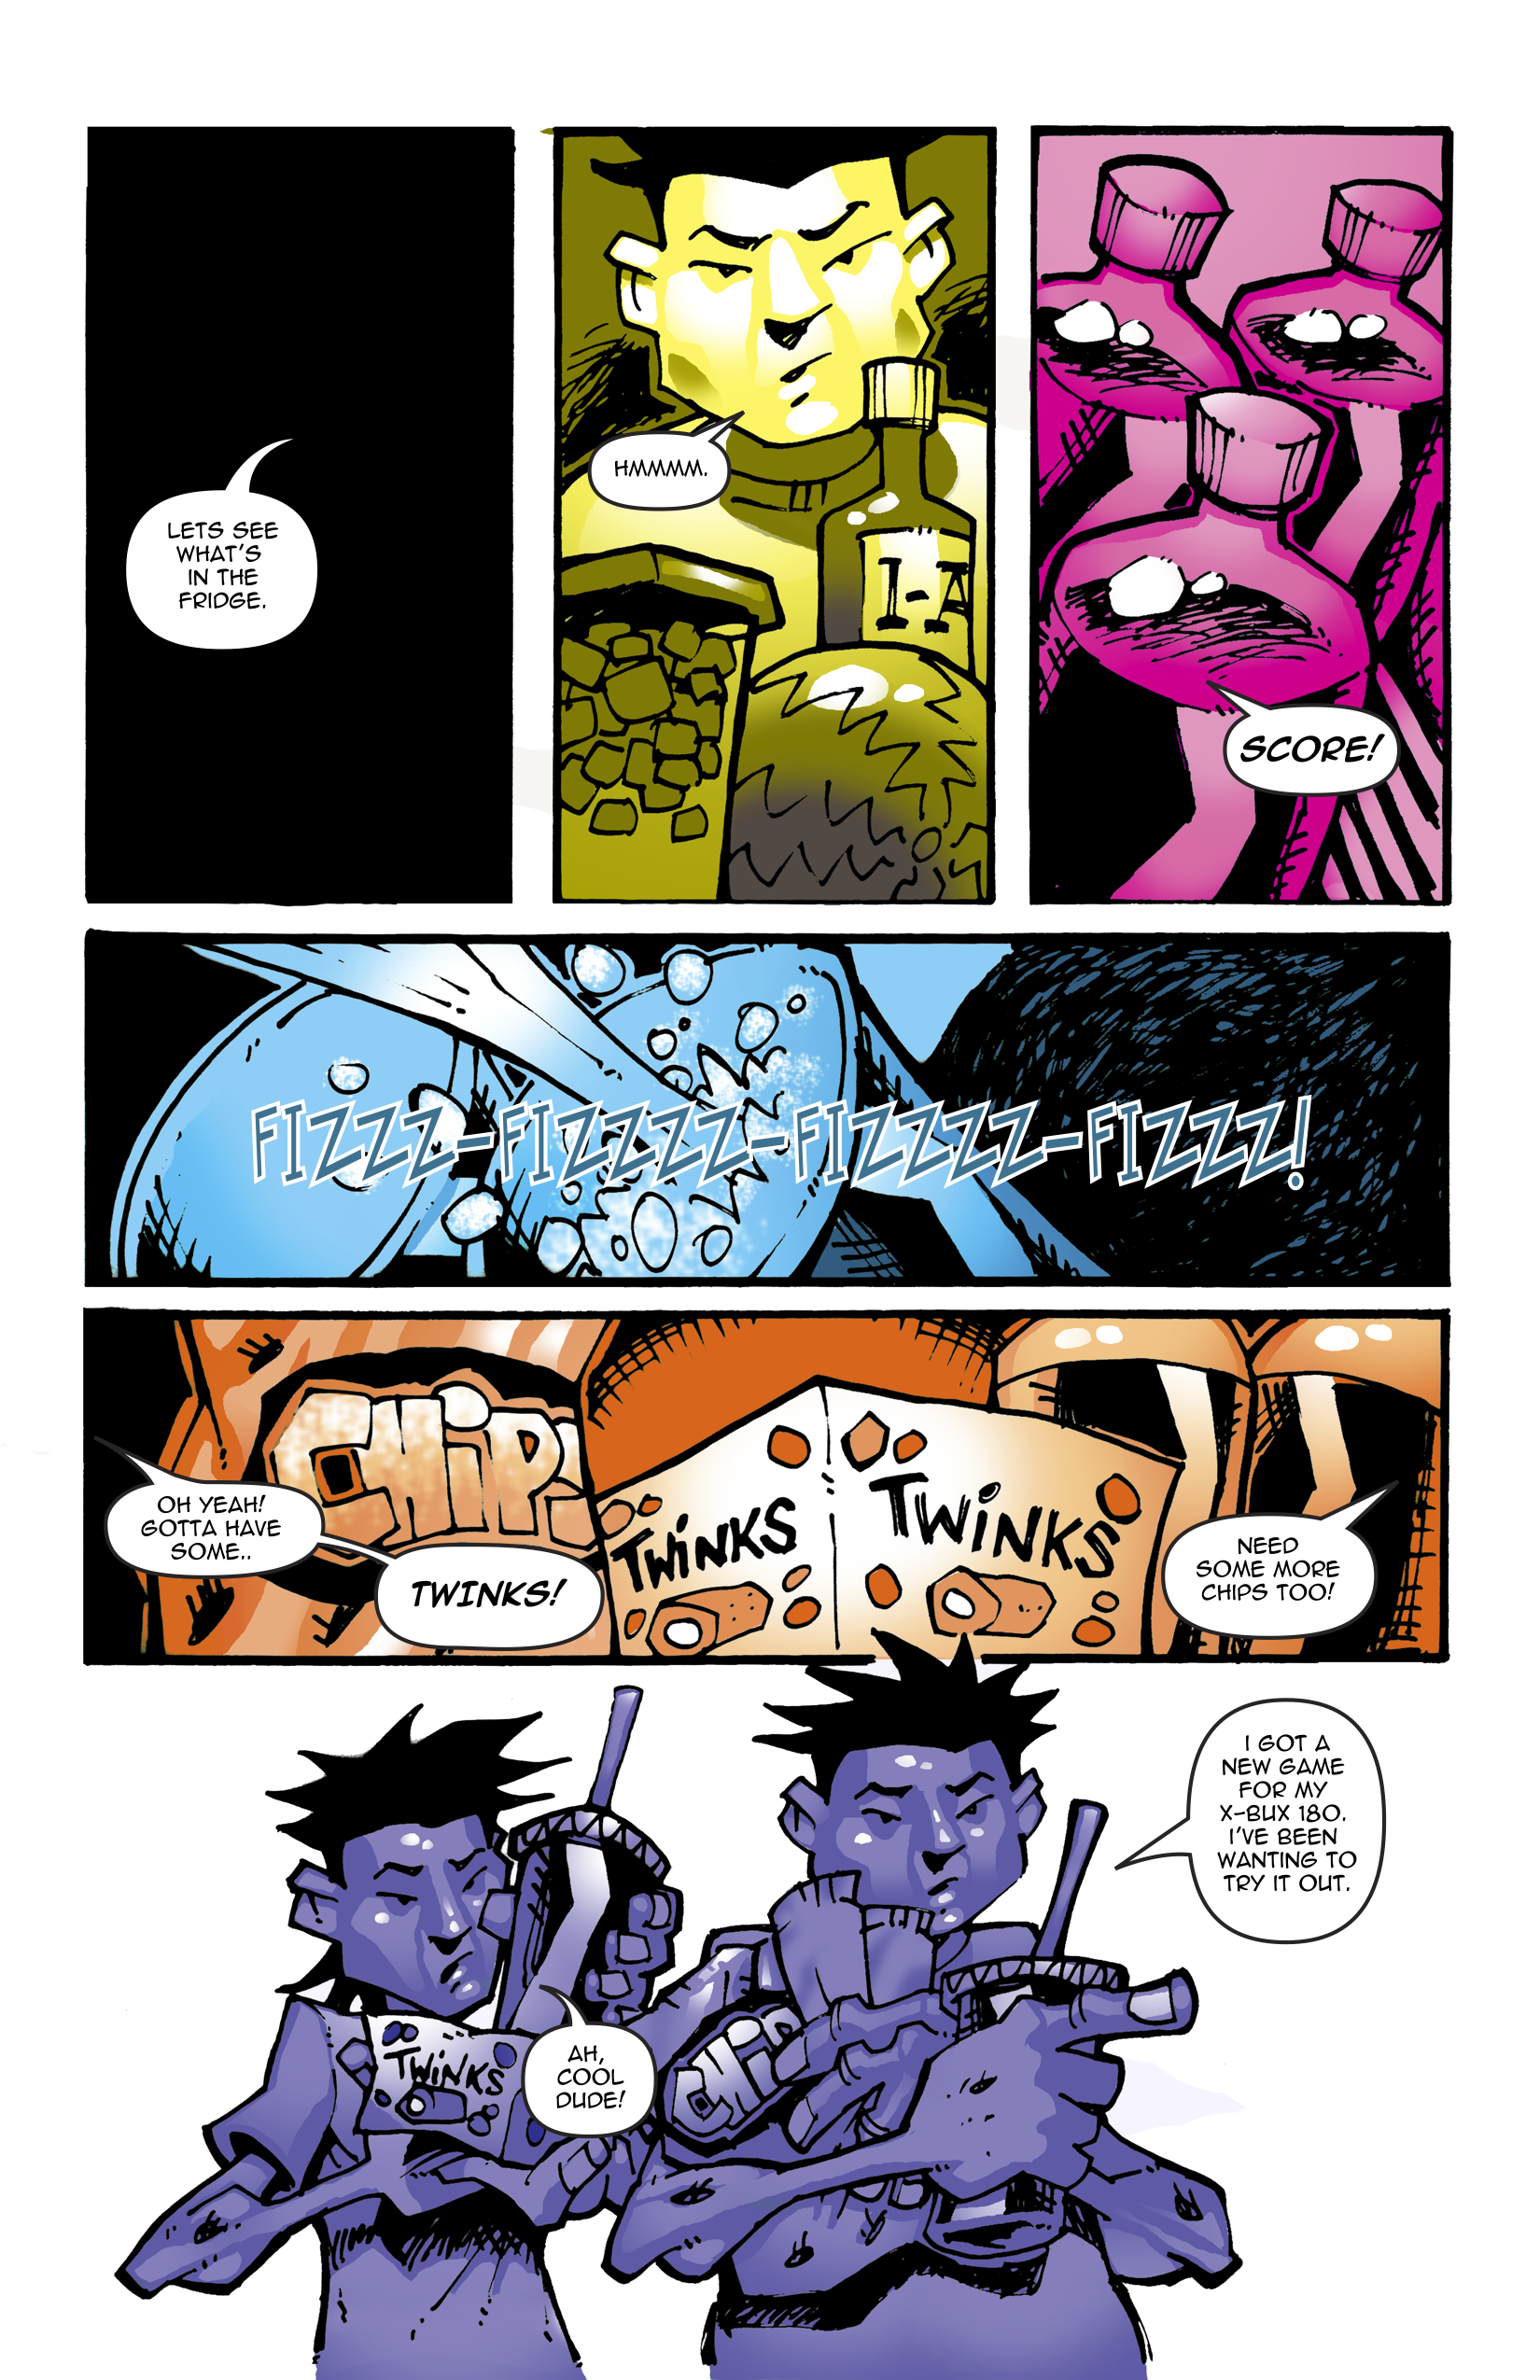 Page 8. They boys turn their attention to raiding the refrigerator for more soda and junk food.